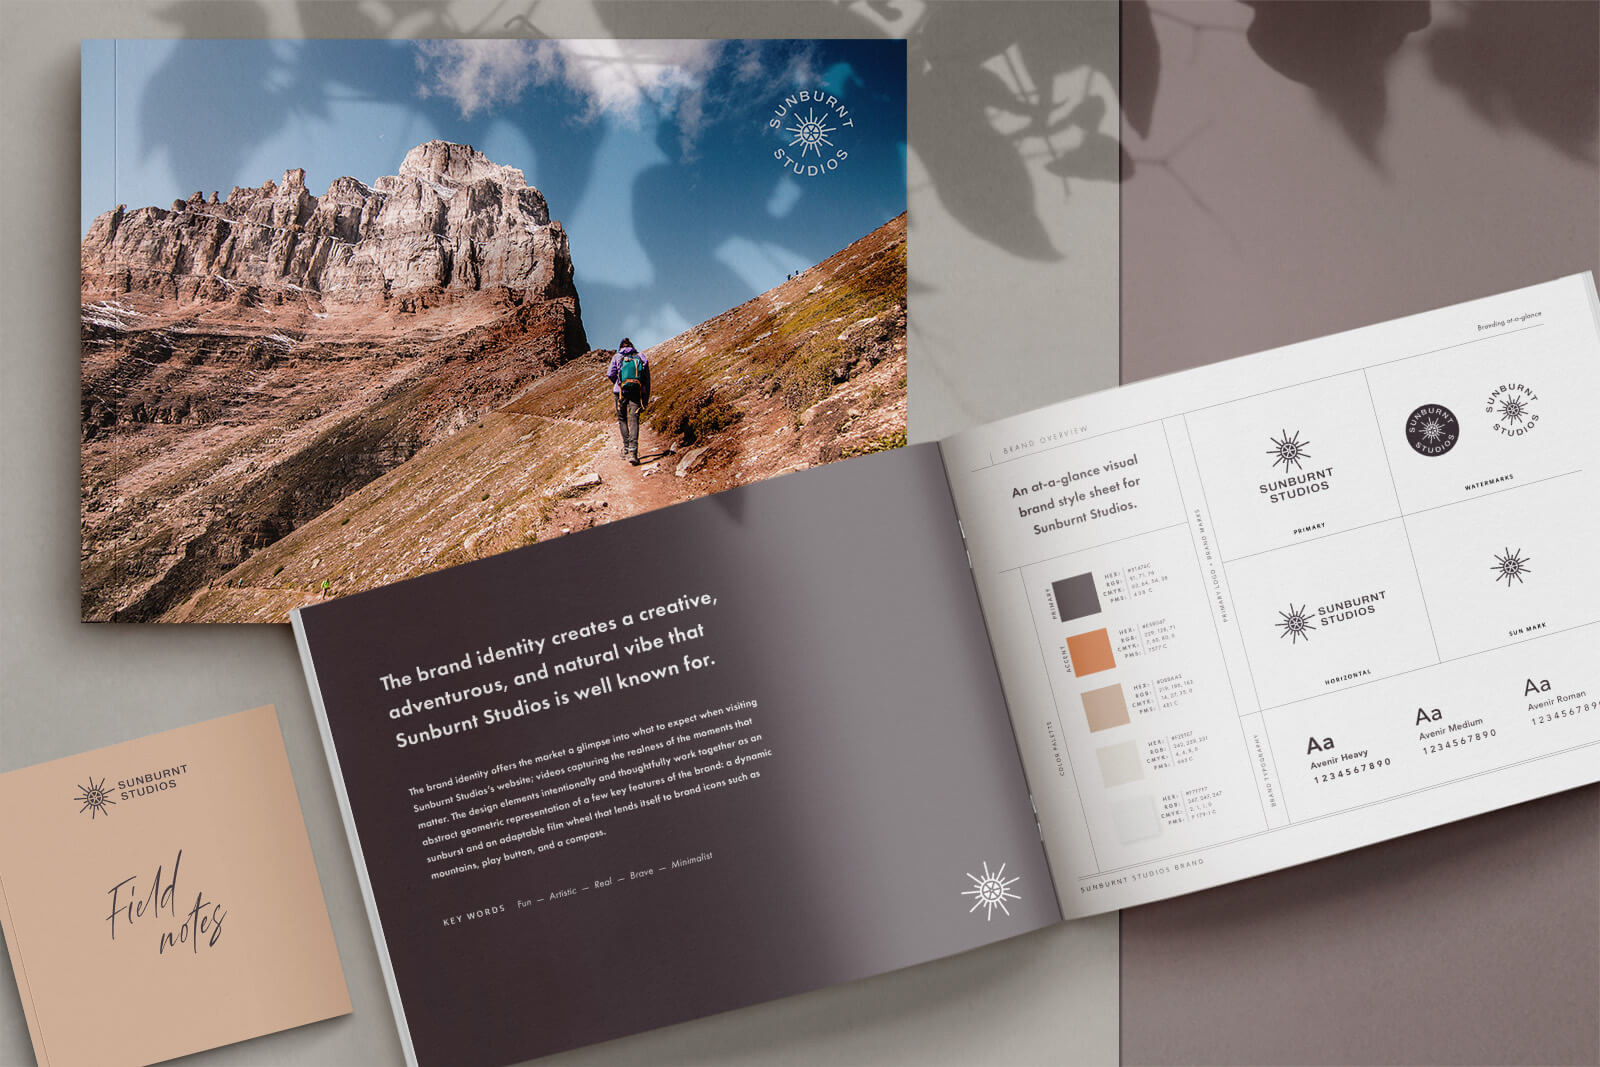 Brand identity (logo design) and style guidelines for videography adventure company and entrepreneur.